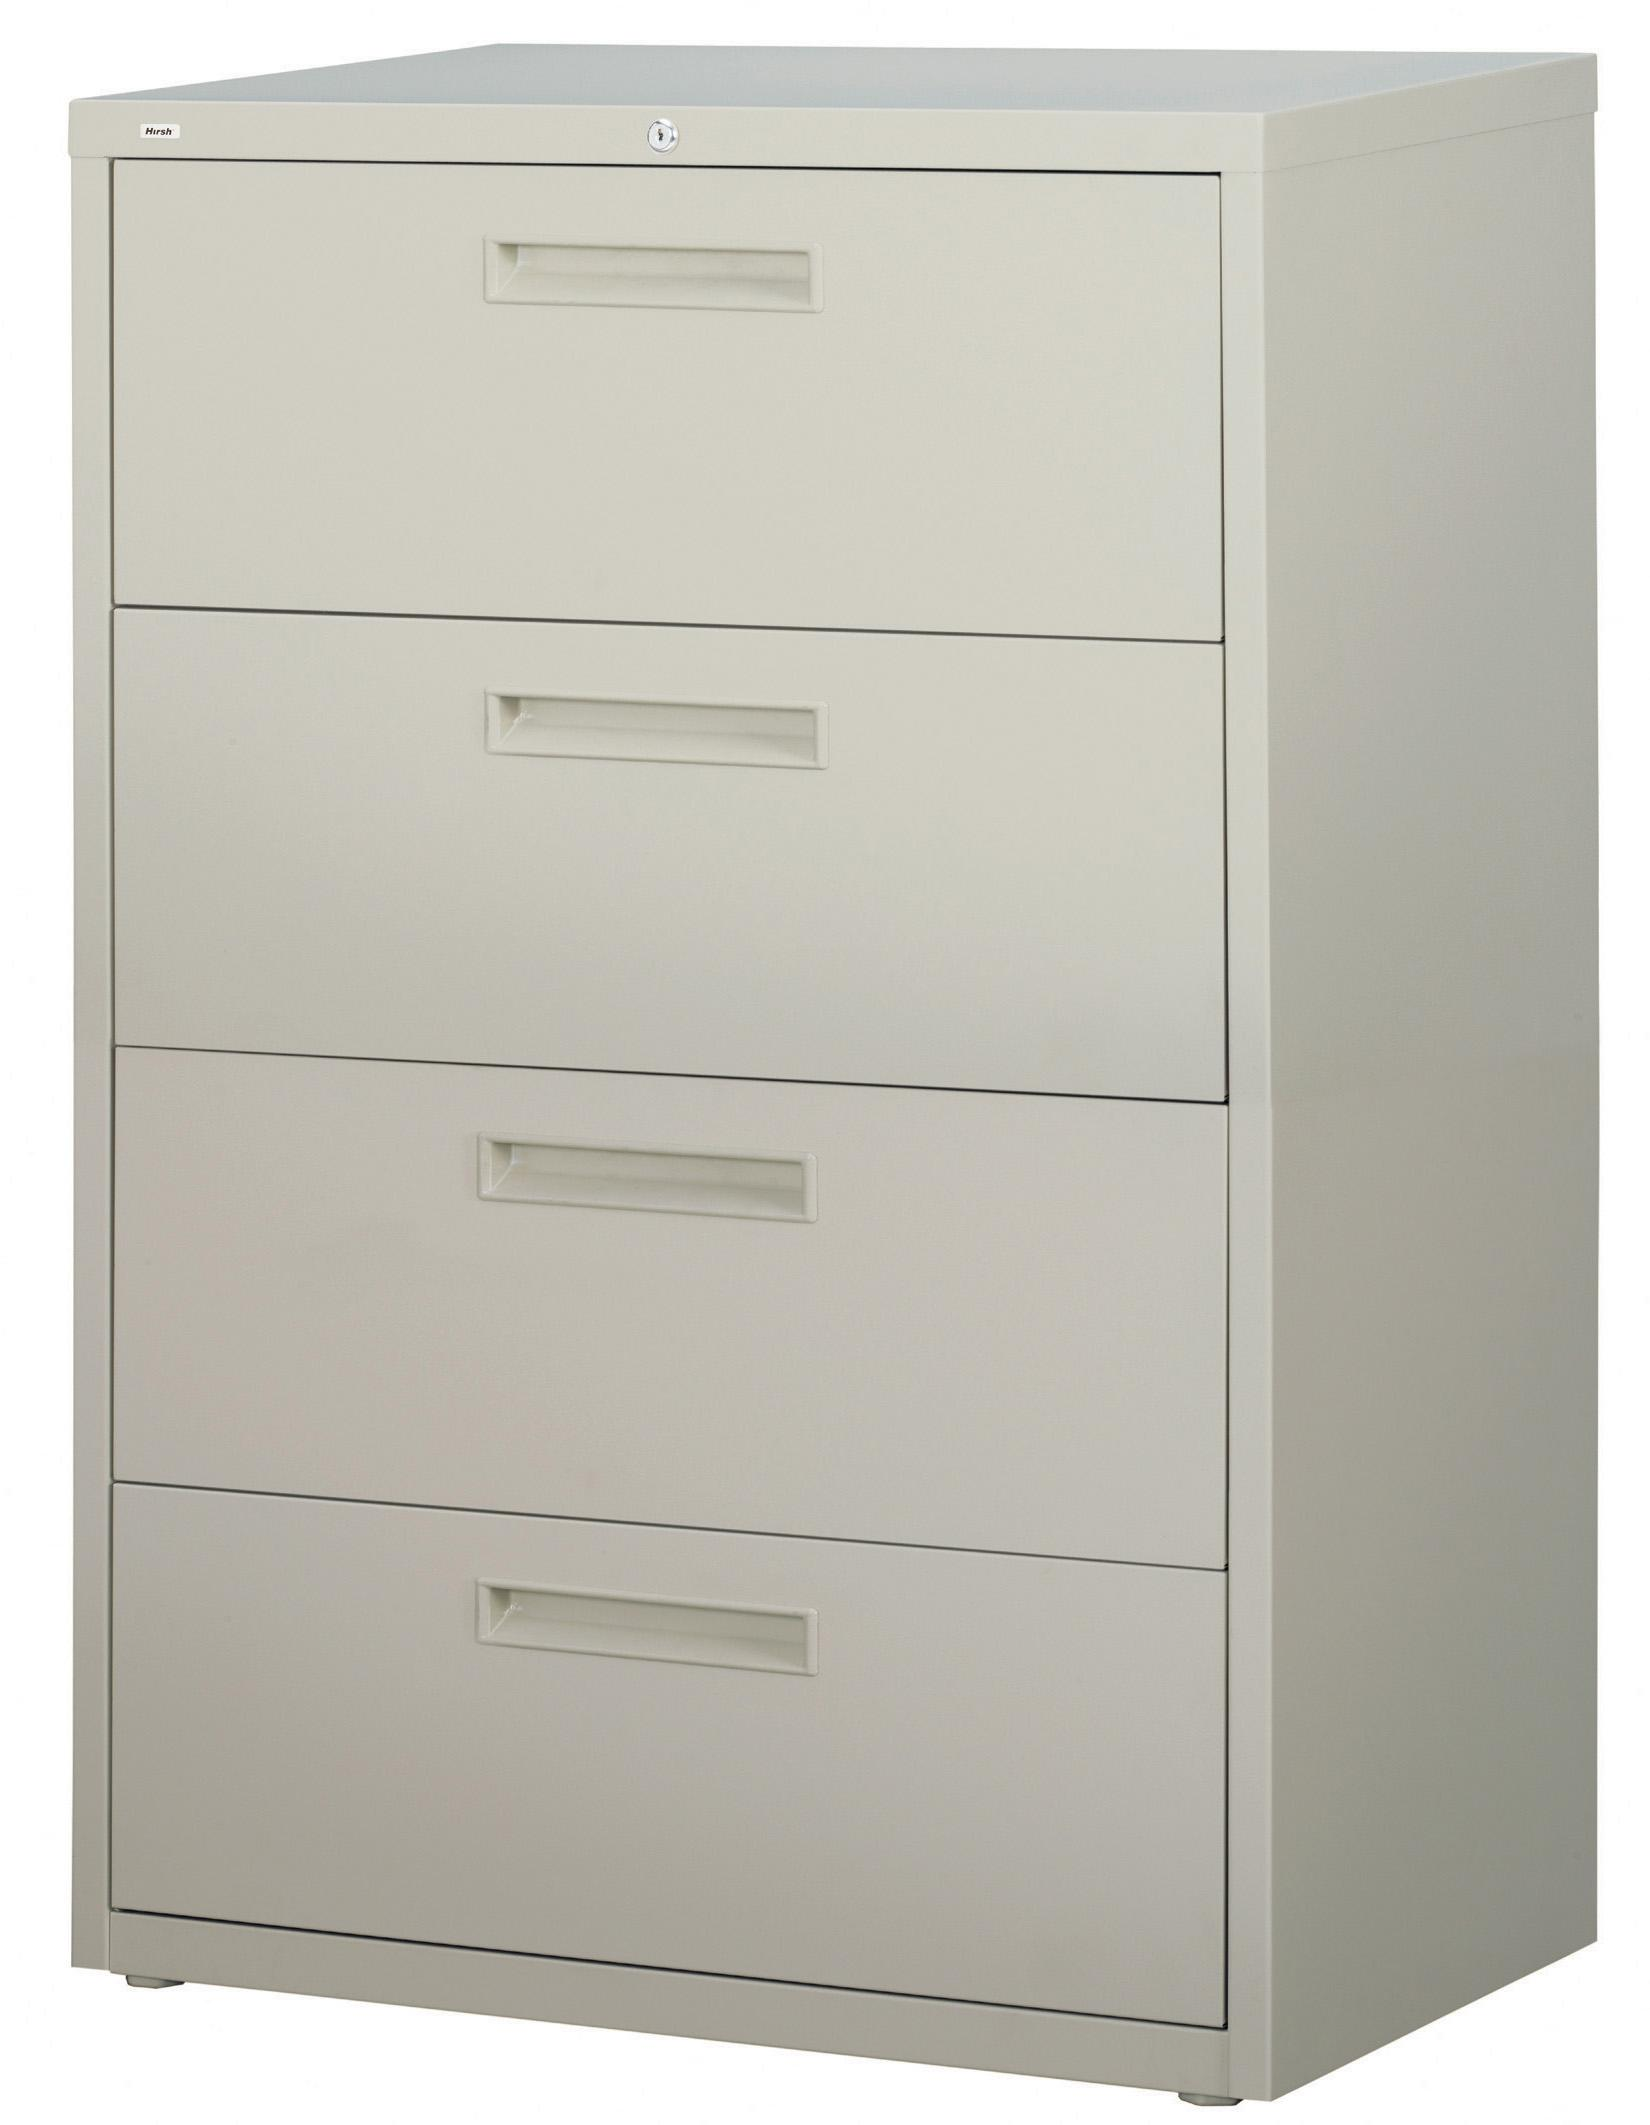 ... Hirsh HL5000 Series 36-inch wide 4-drawer Commercial Lateral File  Cabinet